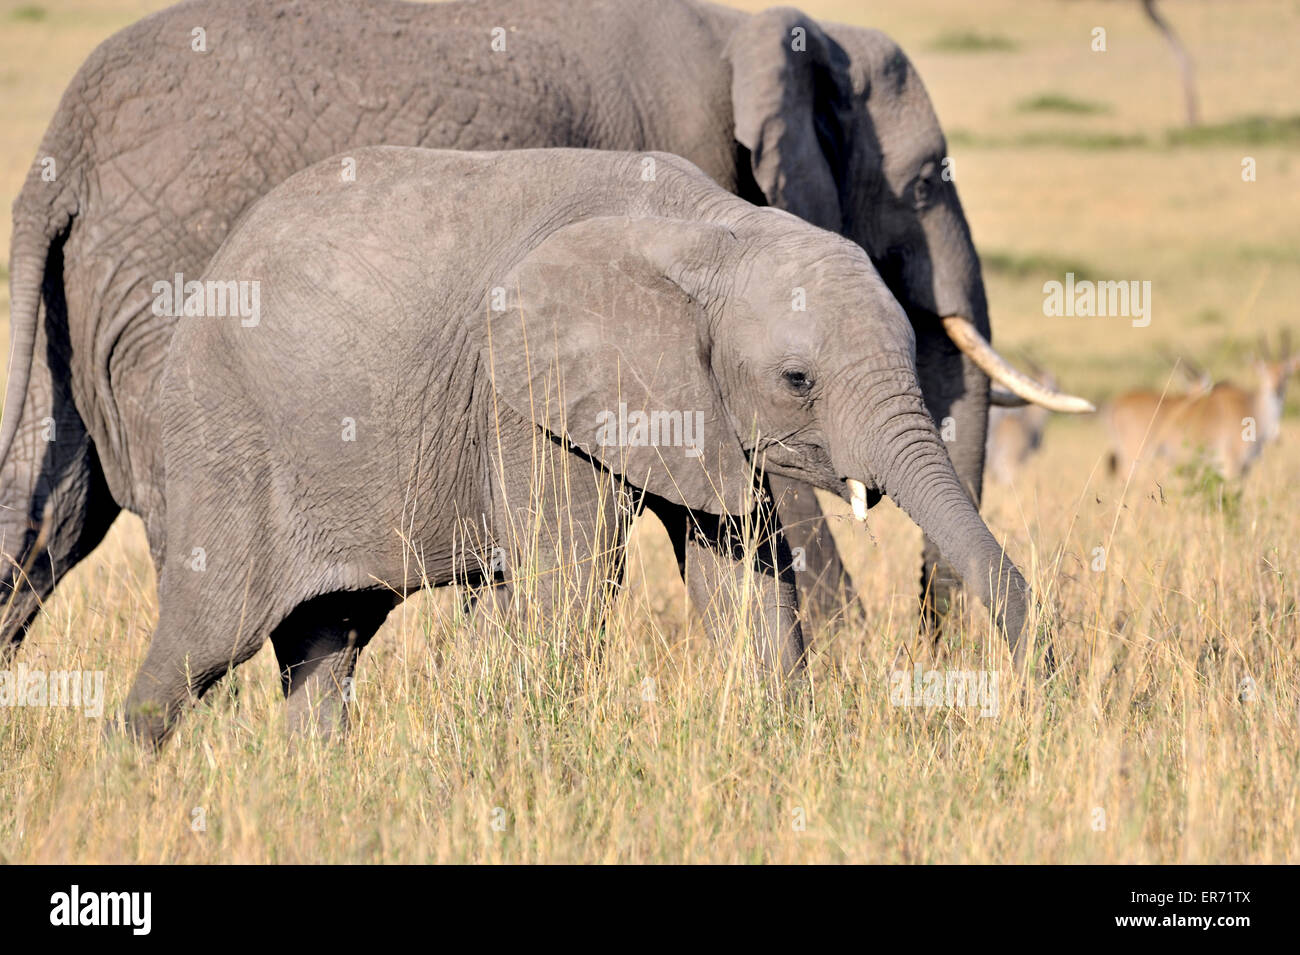 Young elephant and its mother in the Masai Mara - Stock Image